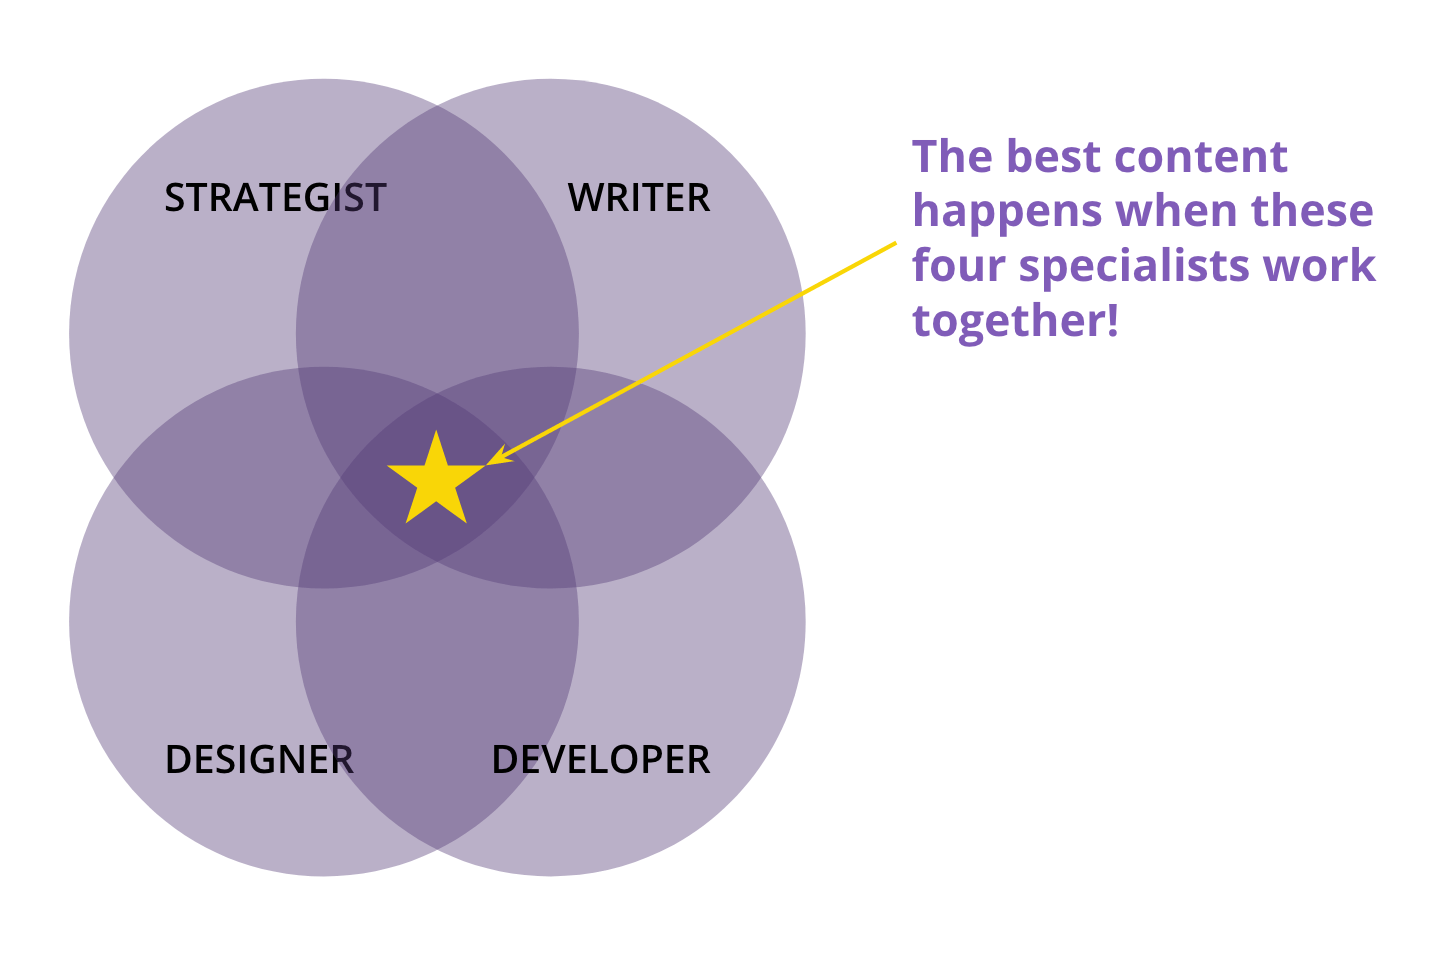 The ideal content team has a strategist, a writer, a designer, and a developer